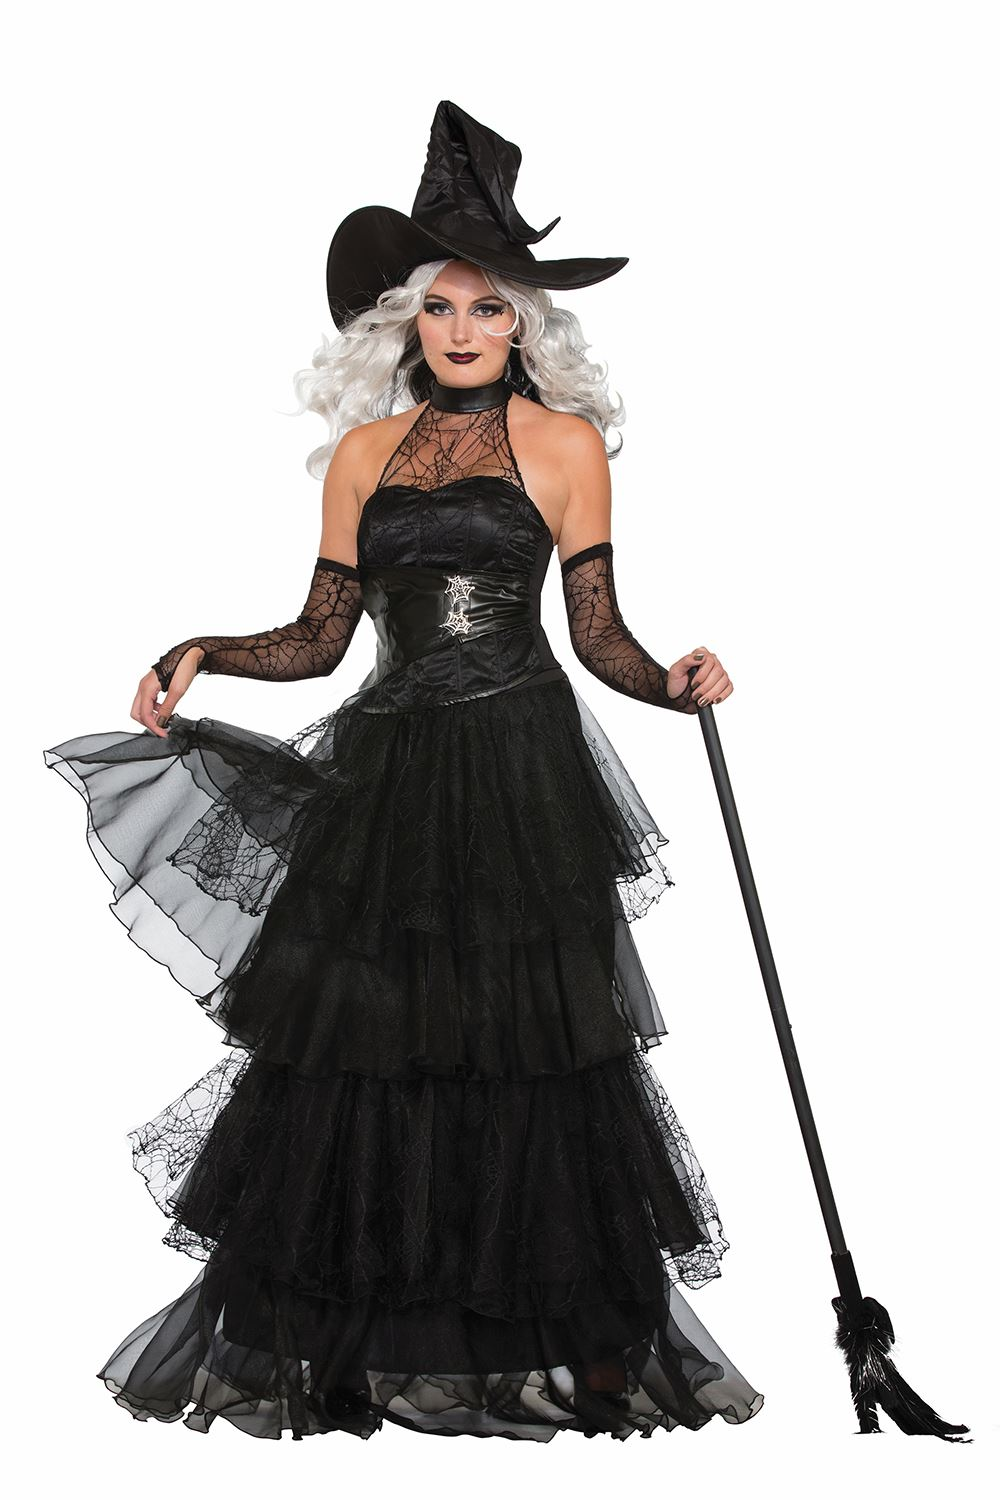 Adult Ember Witch Woman Costume 41 99 The Costume Land